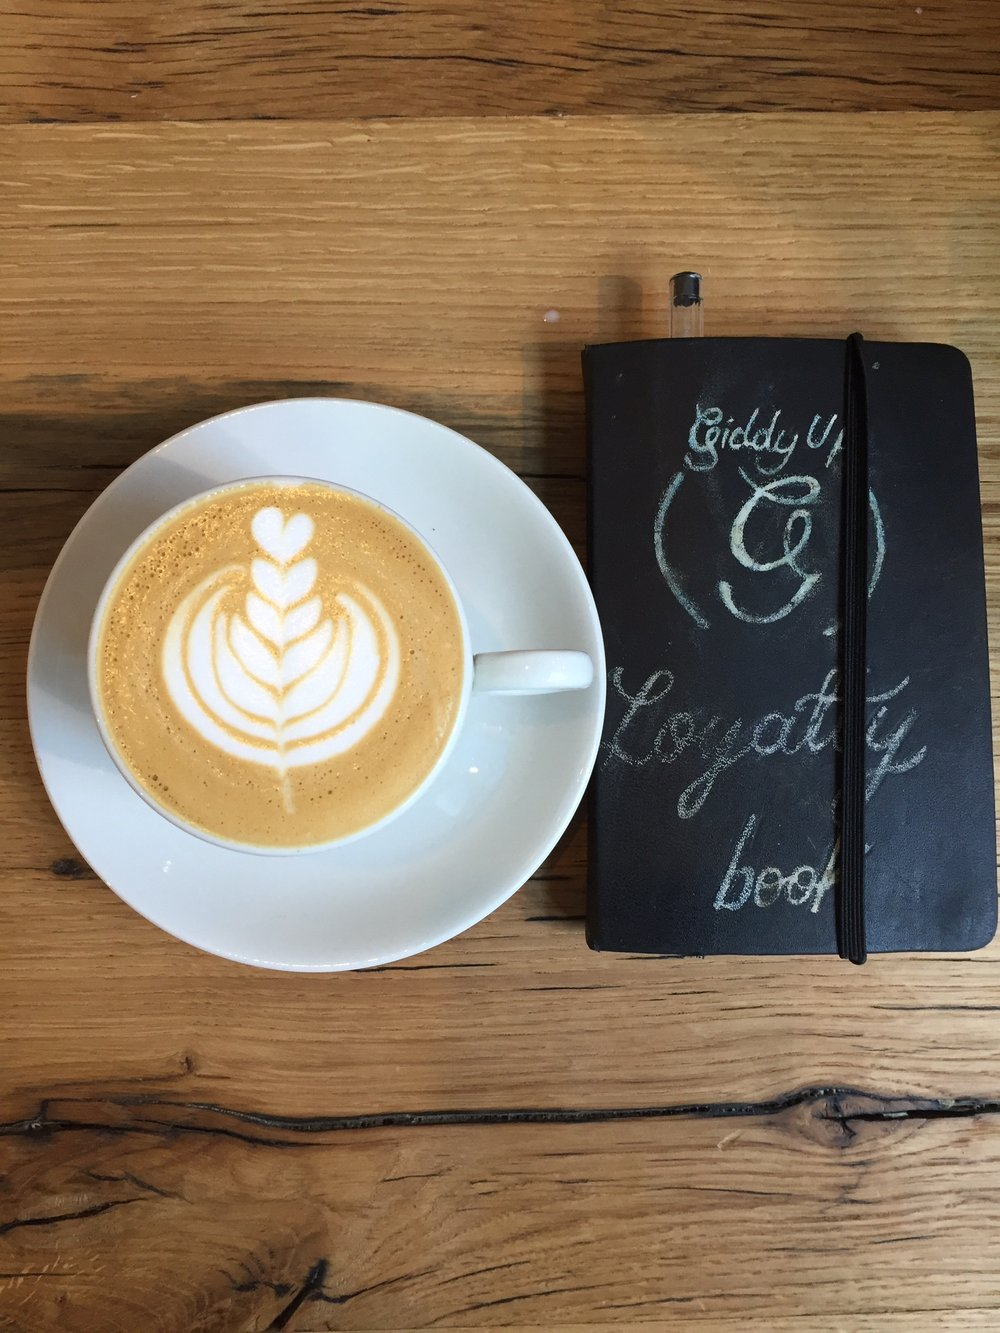 Love to our loyal customers - Tick off each coffee you buy in our loyalty book and get your 10th one on us